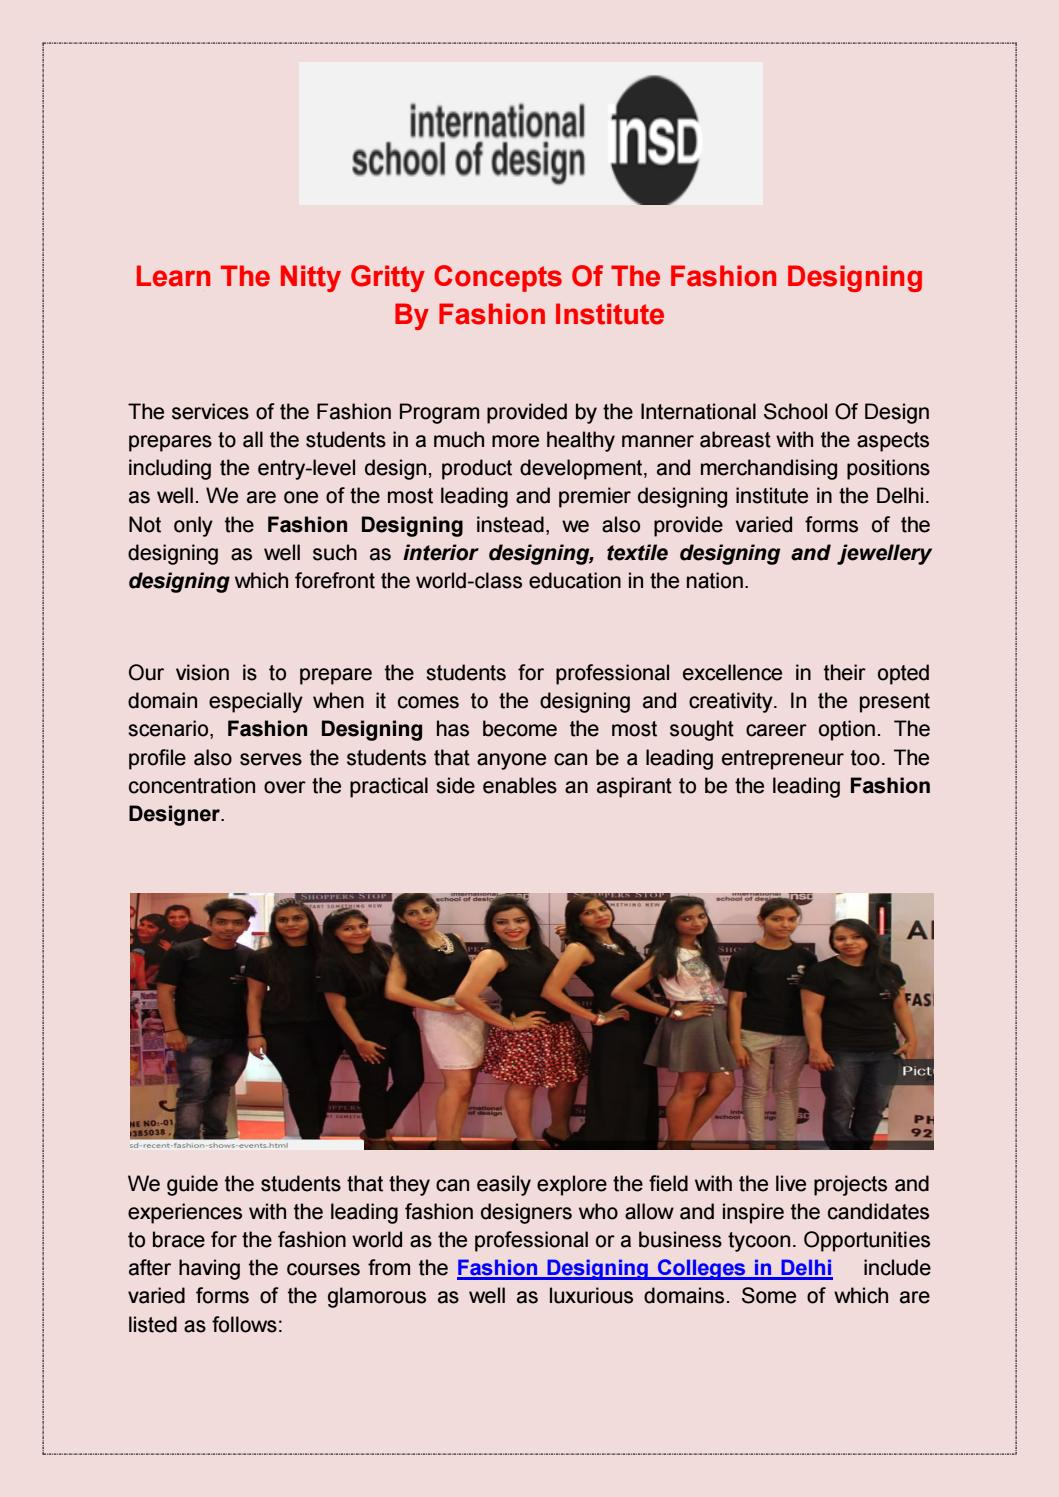 Learn The Nitty Gritty Concepts Of The Fashion Designing By Fashion Institute By Insd Paschim Vihar Issuu